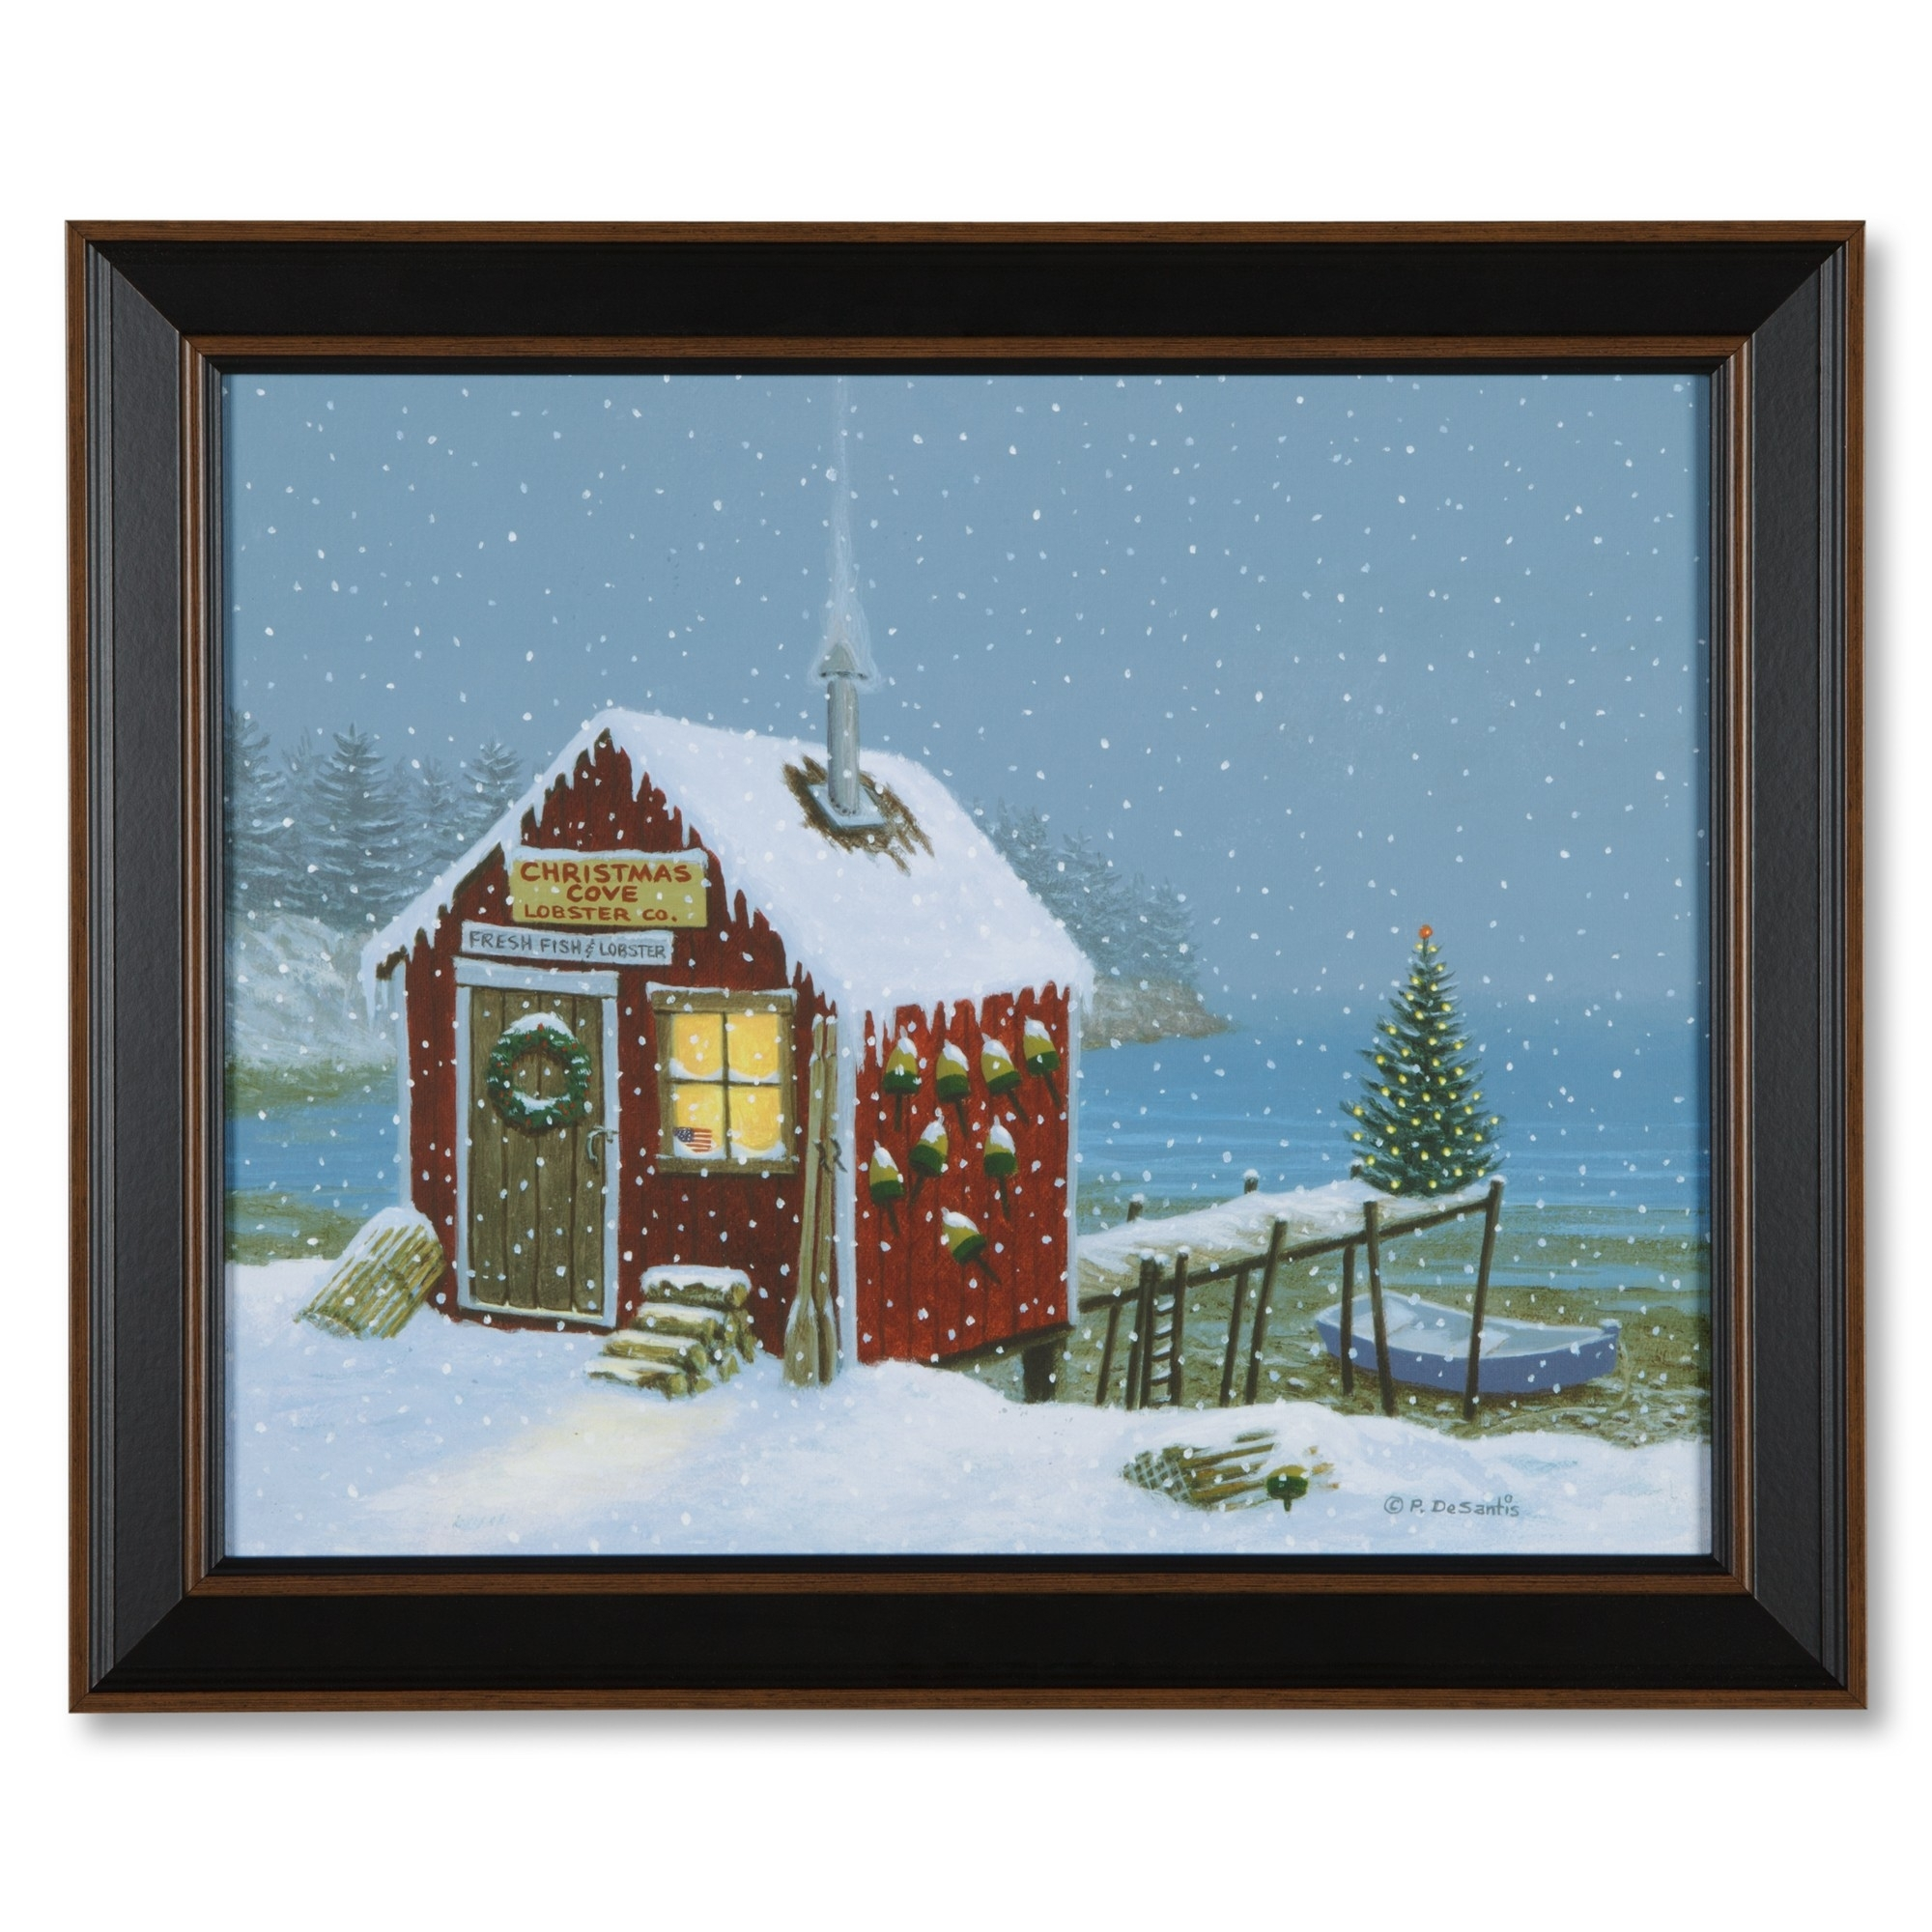 Christmas Cove Lobster Shack Print | Sturbridge Yankee Workshop Regarding Most Current Christmas Framed Art Prints (View 6 of 15)